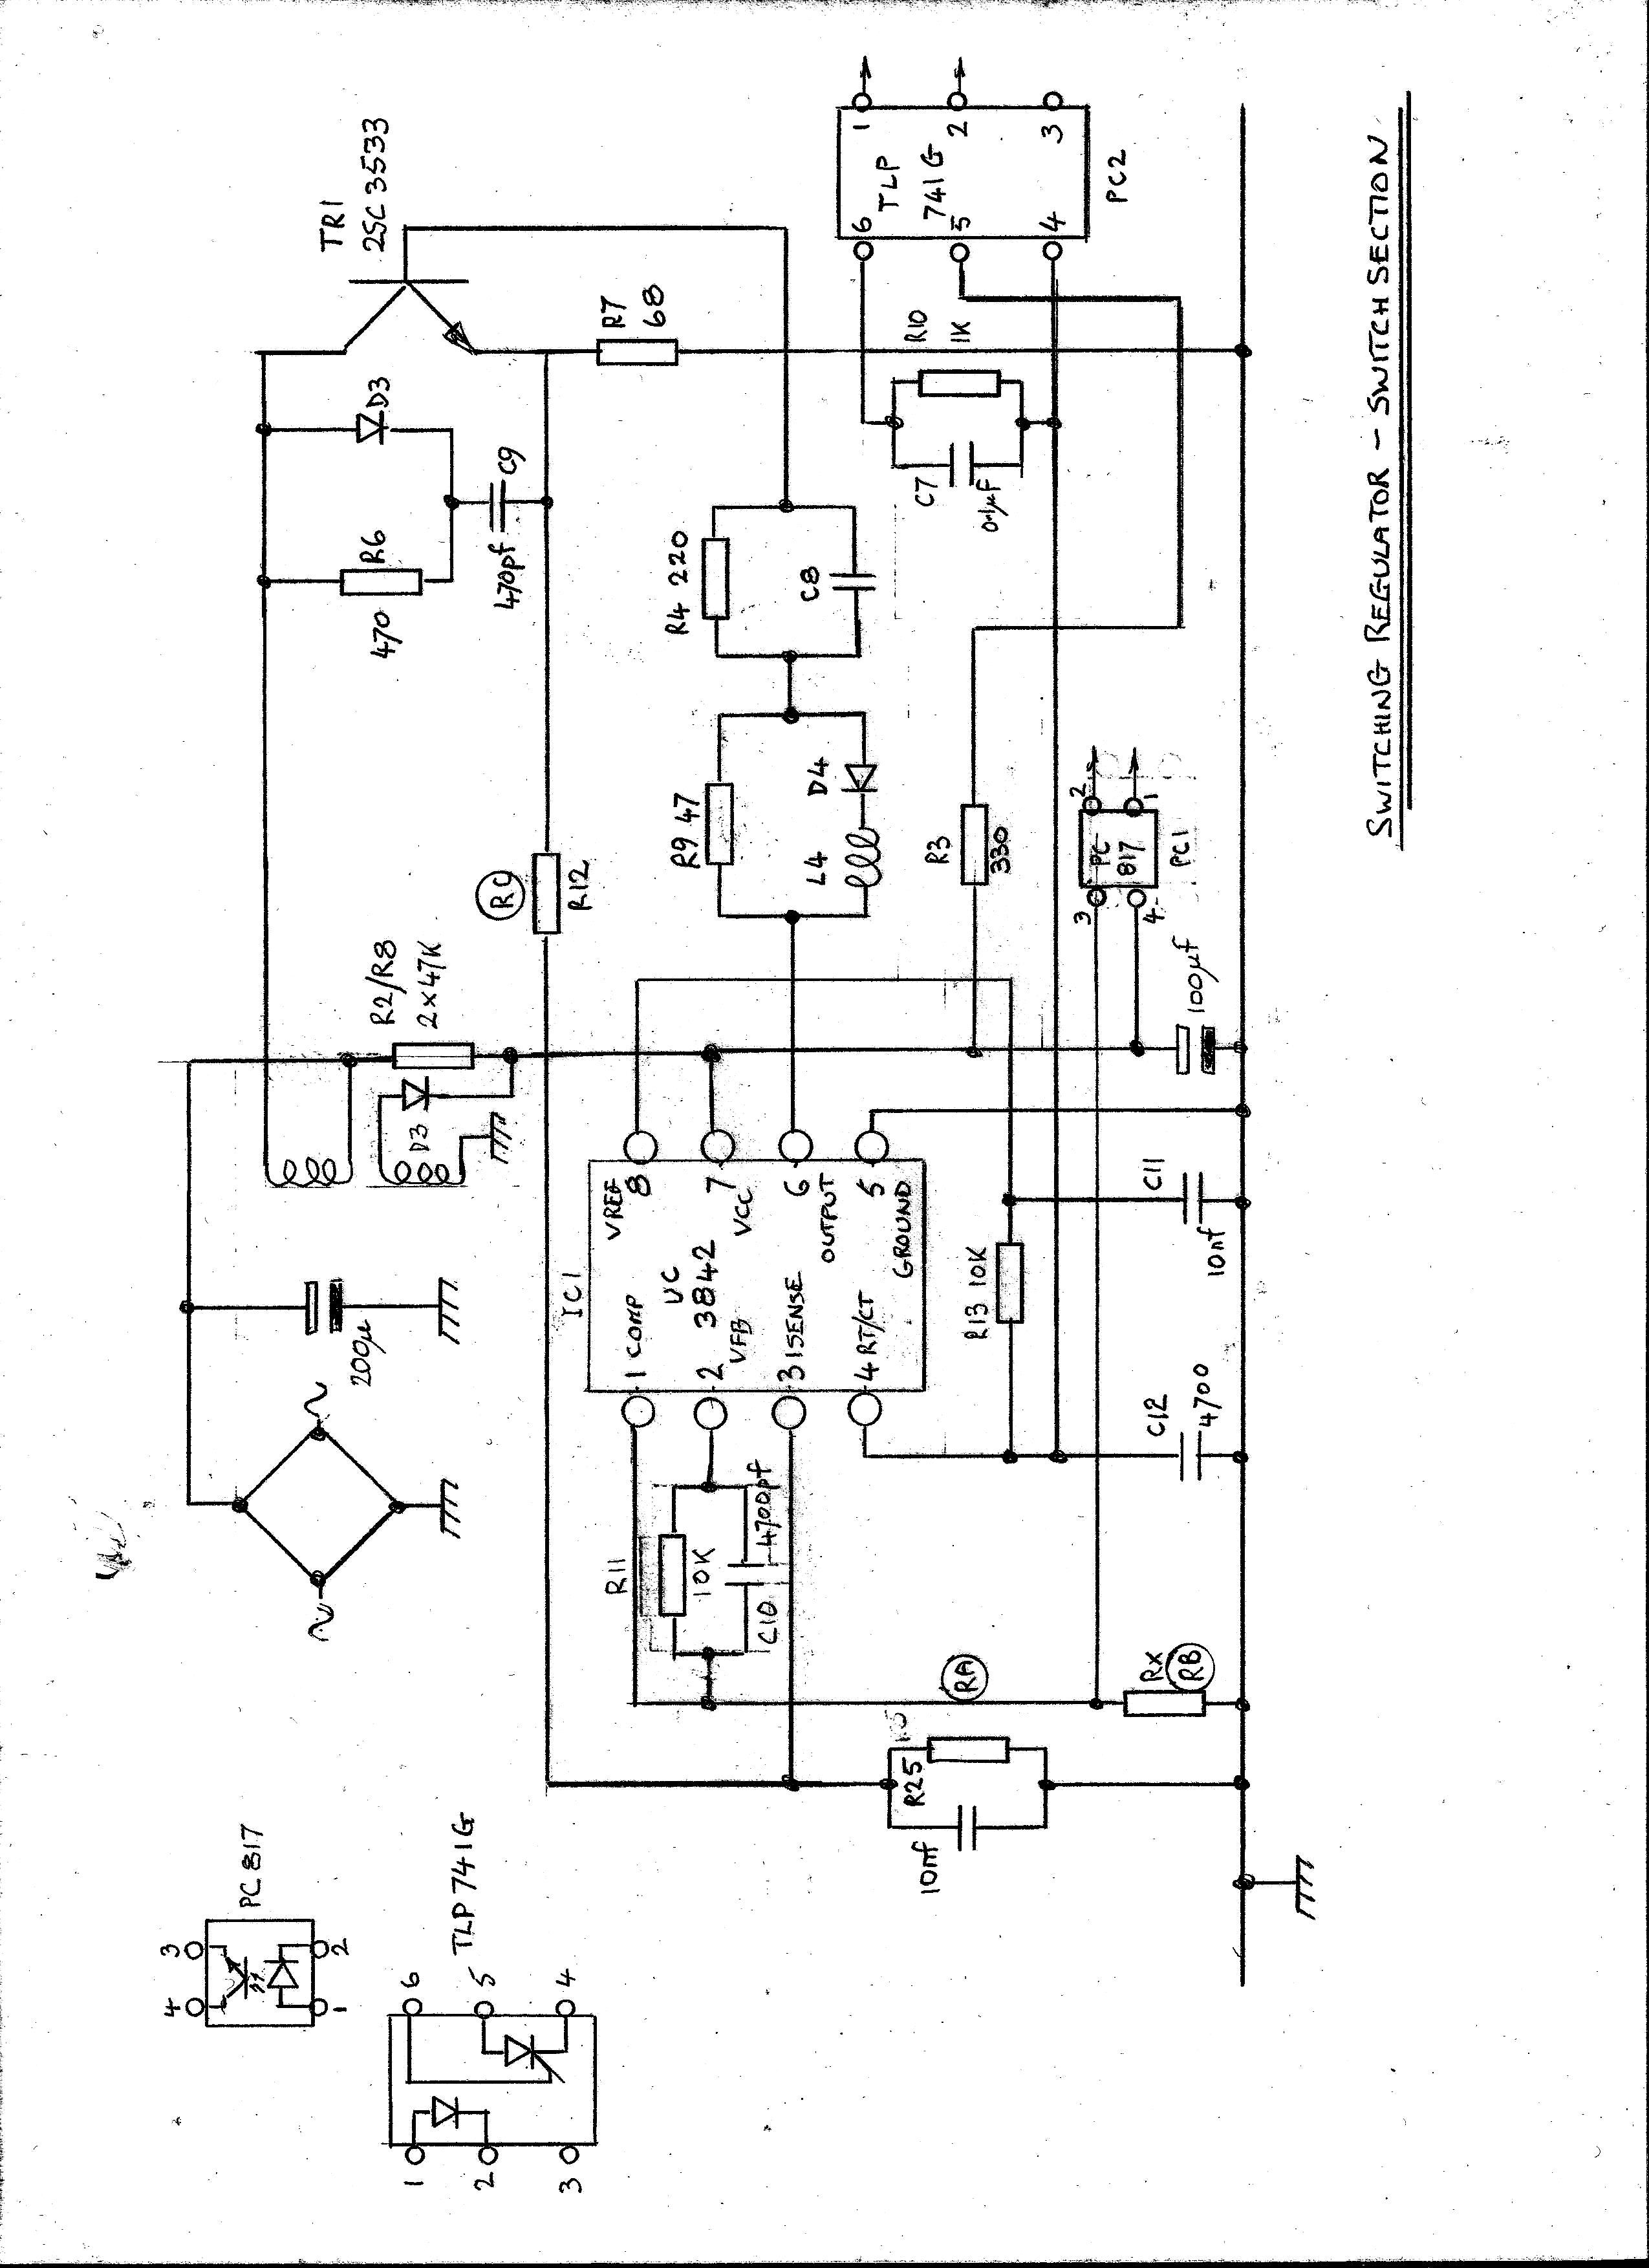 UC3842: Regulator not oscillating correctly - Power management forum